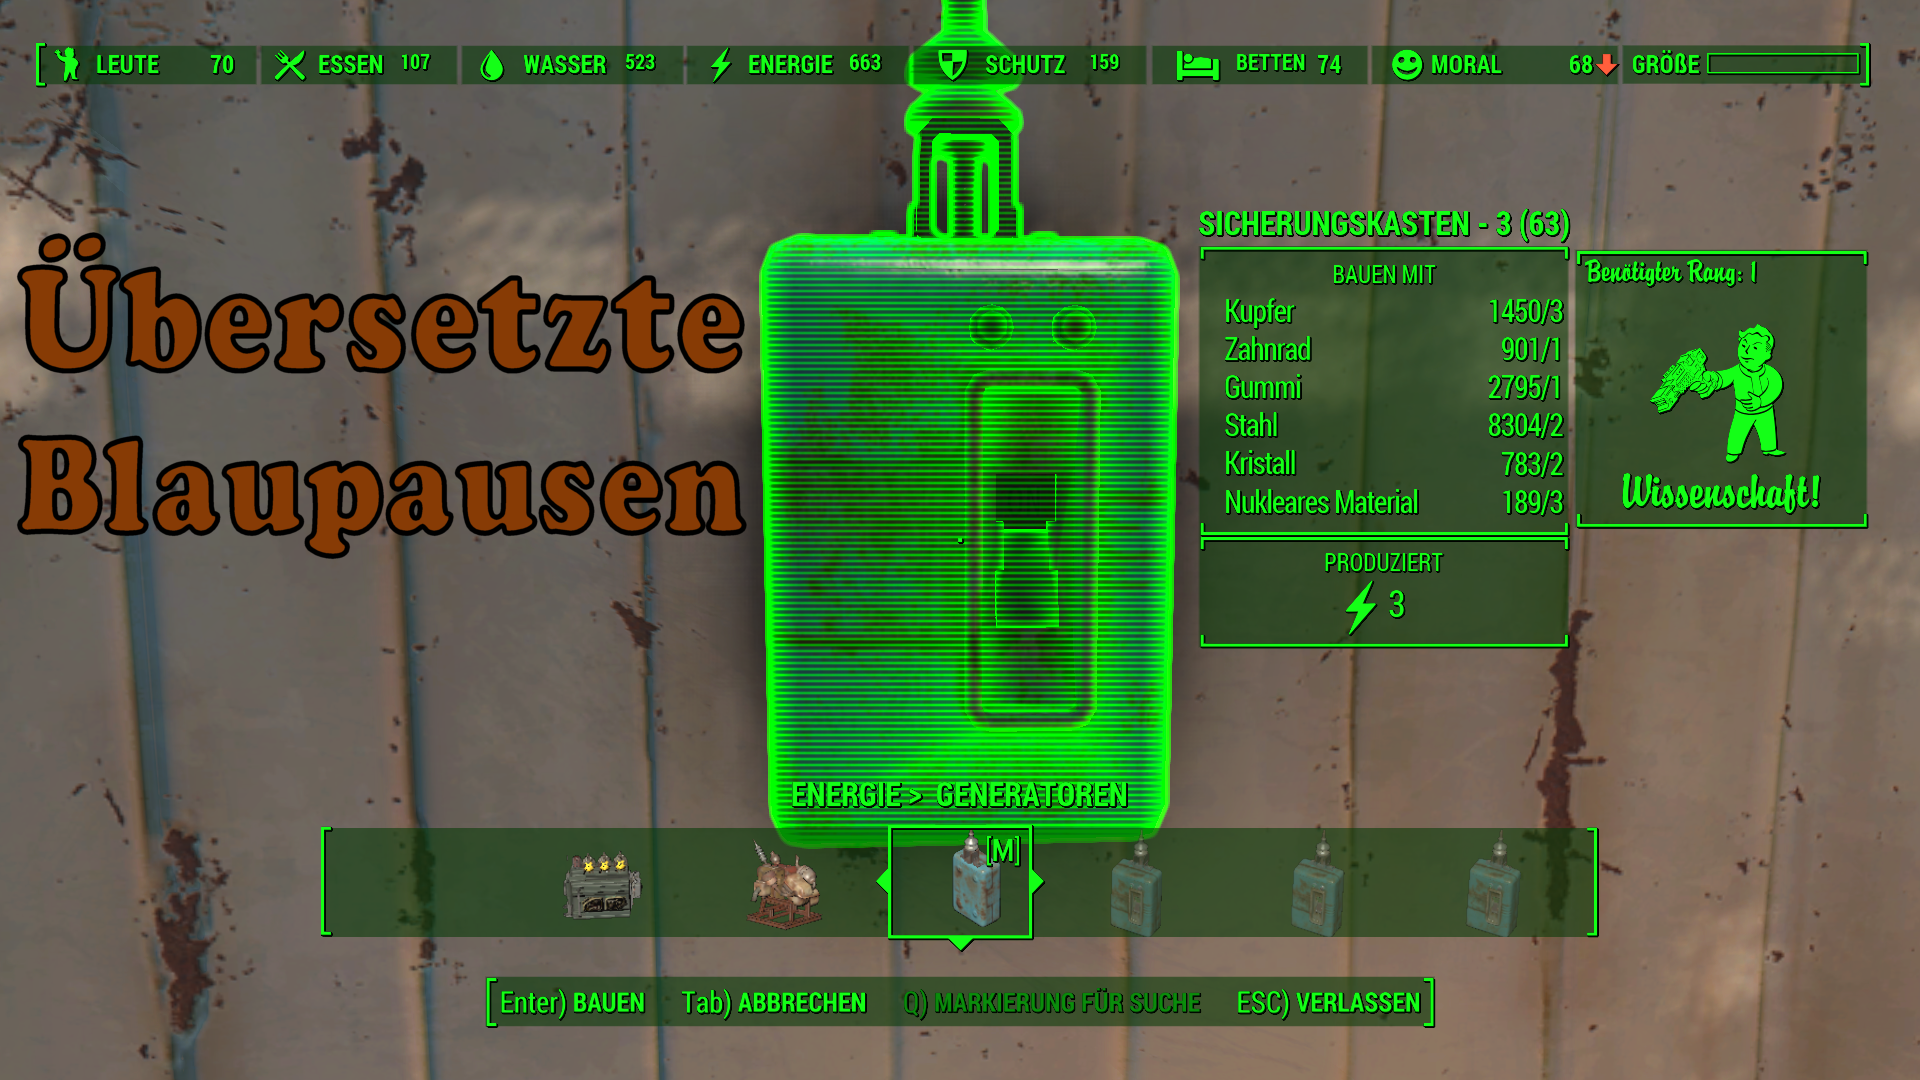 25645 1 1500628219 generator fusebox with 3 5 10 and 100 energy german fallout 4 fuse box generator at n-0.co